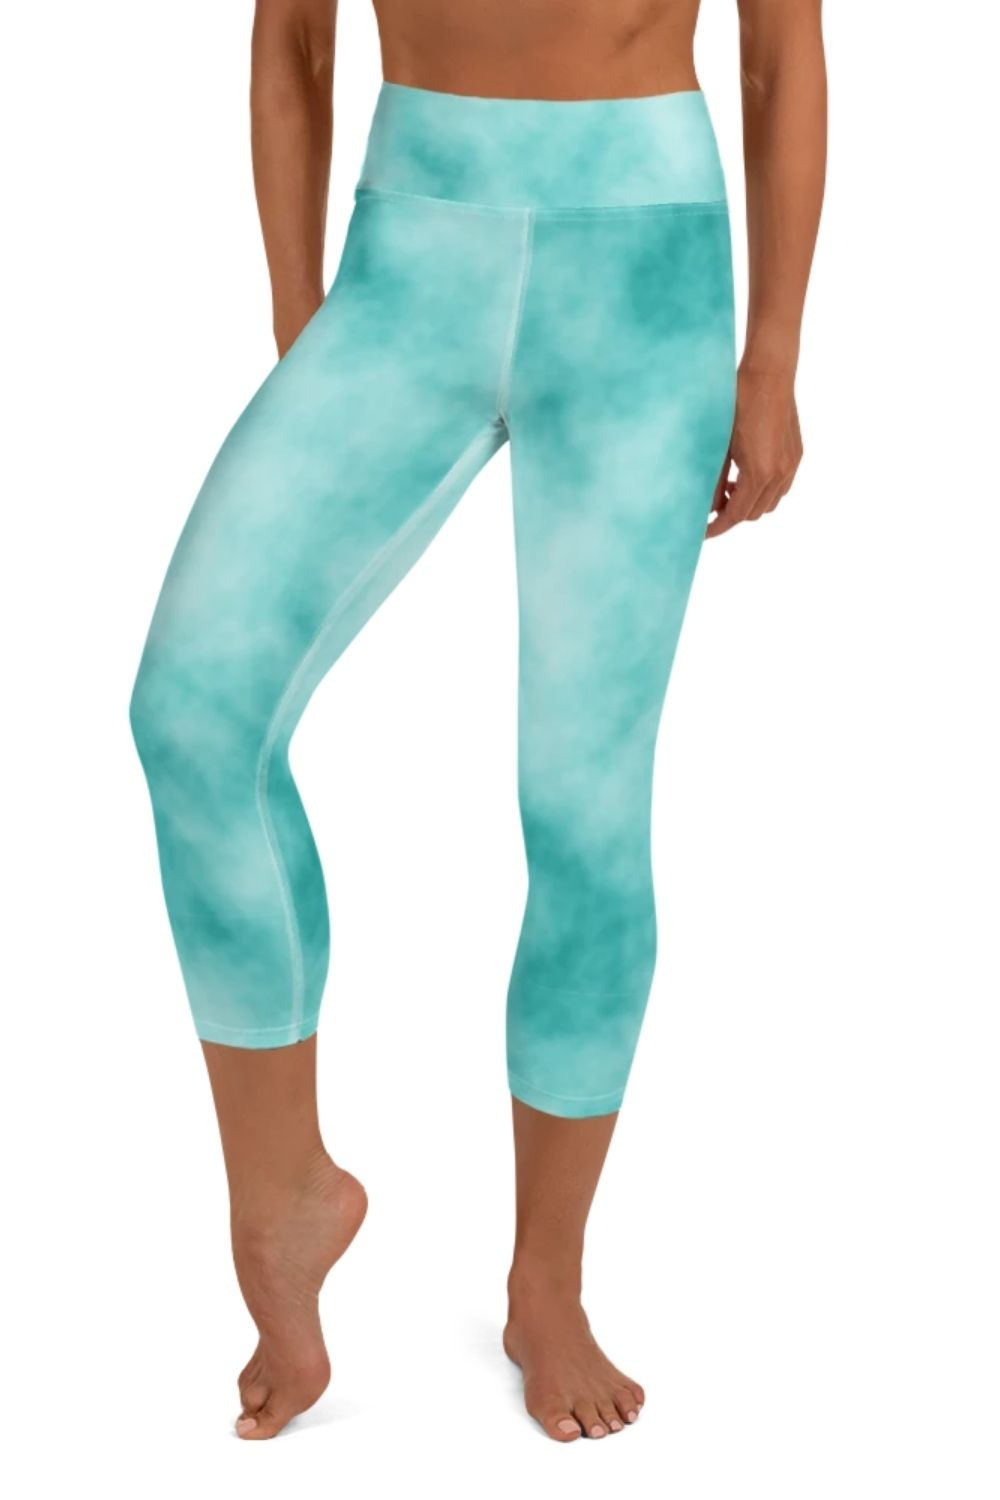 Sea Foam 3/4 Leggings